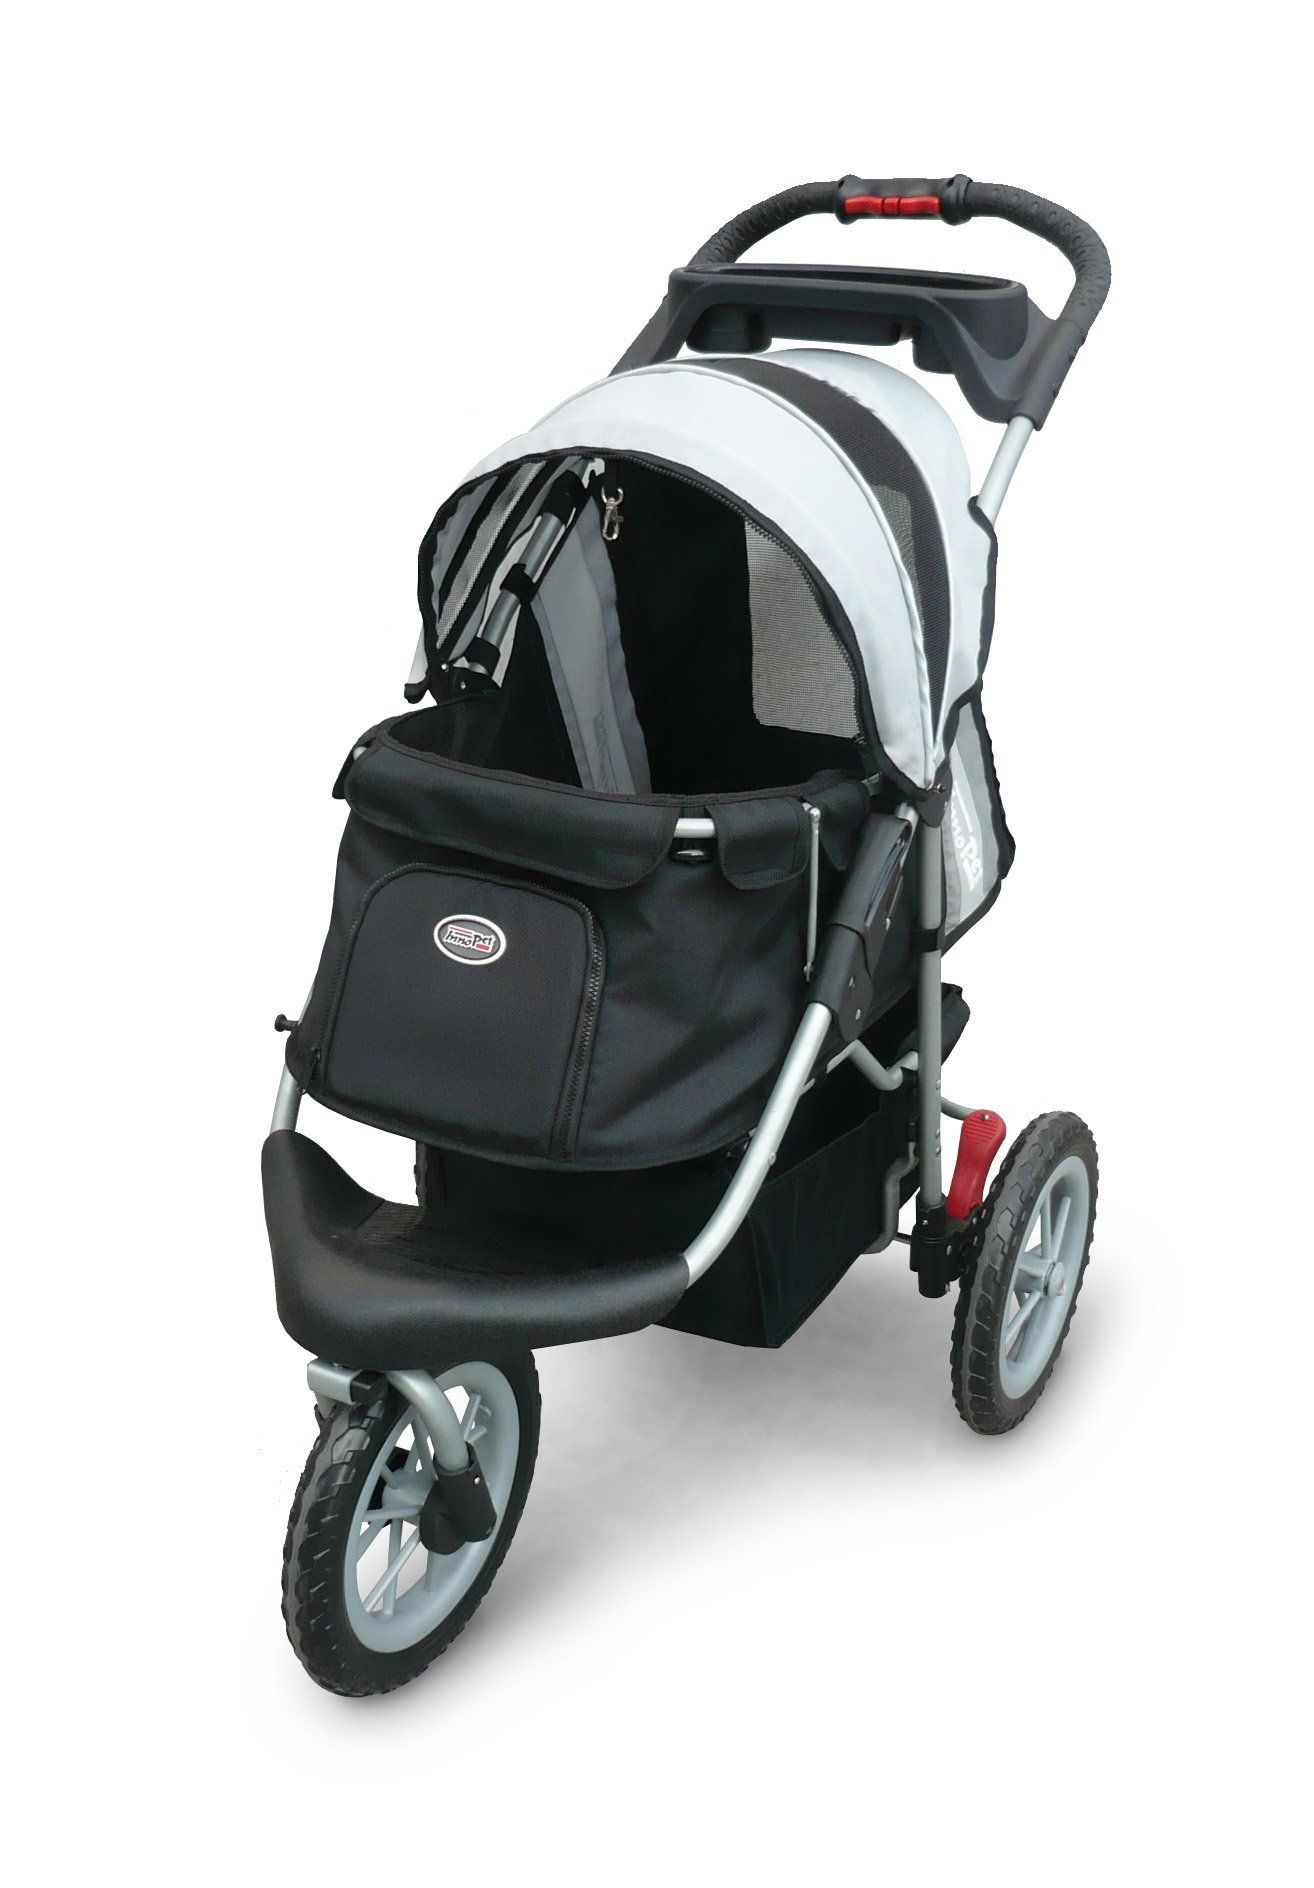 Pet Stroller,IPS070,Black/Silver, Free Rain and Wind